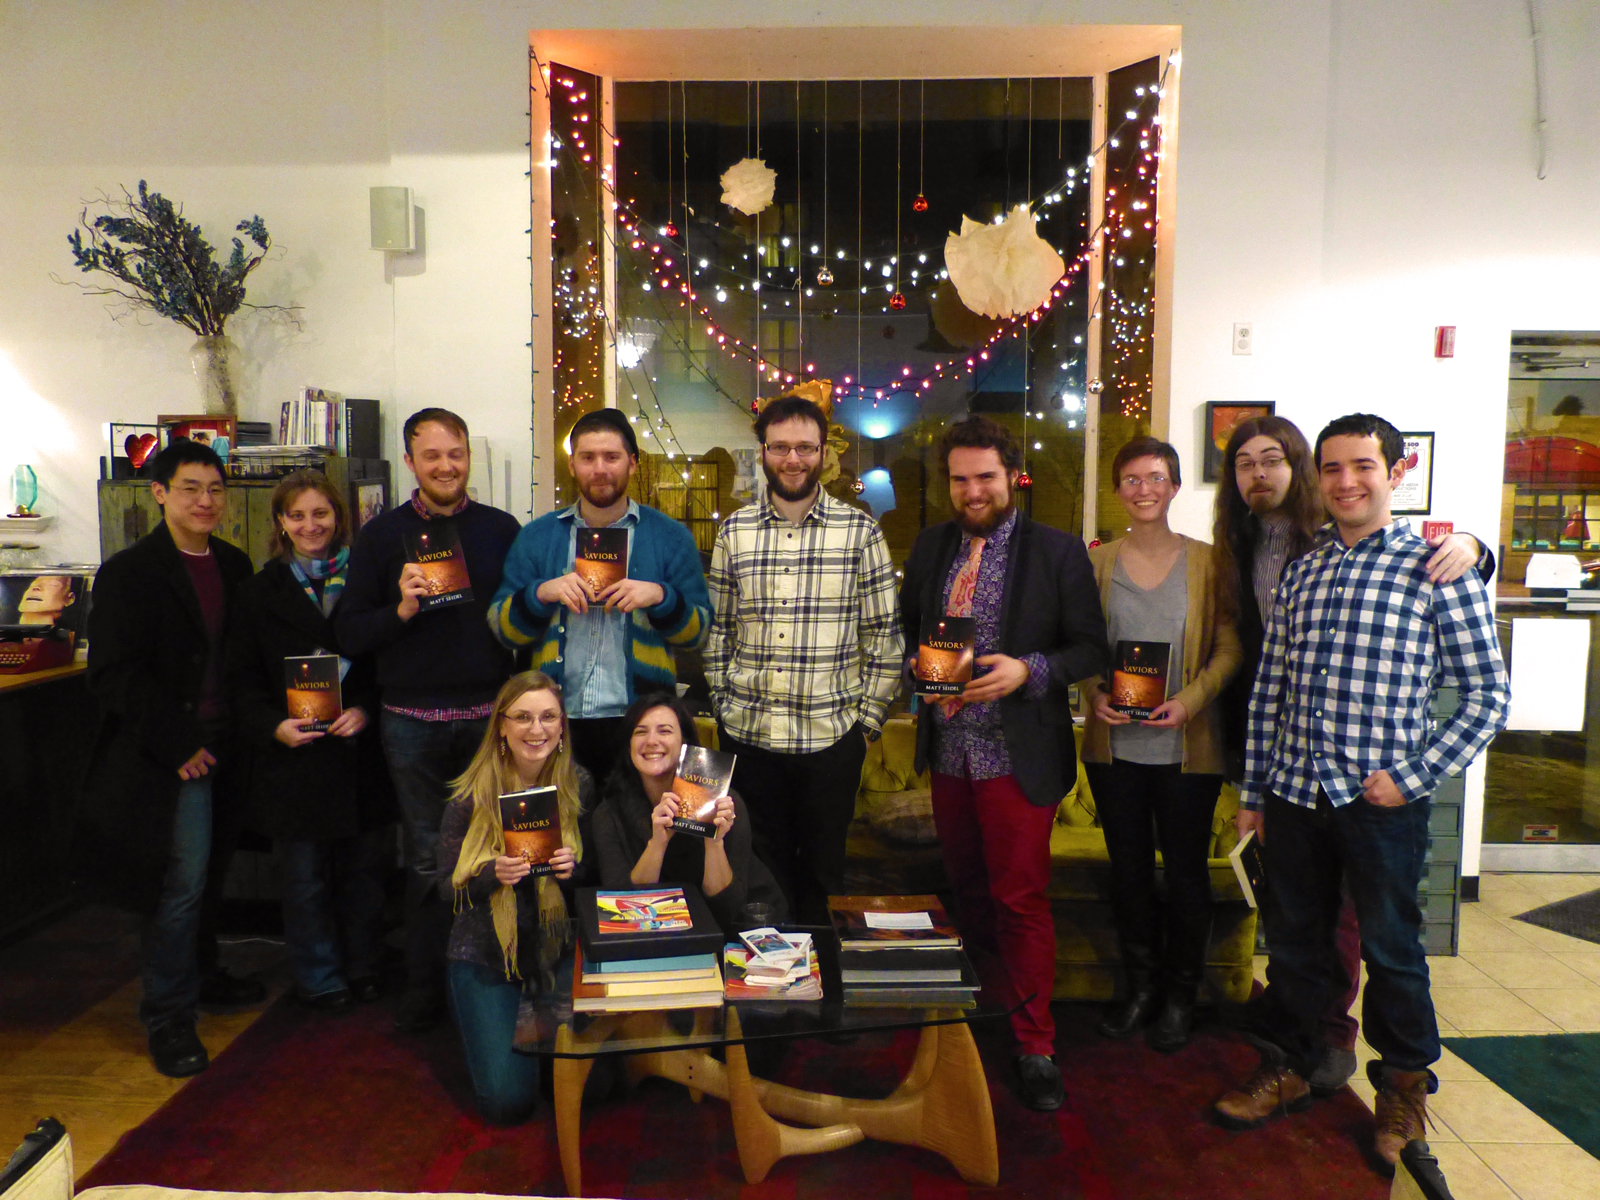 """Center, Author Matt Seidel. Group holding the new release of his thriller novel, Saviors. Holon Publishing """"Wine & Sign"""" event from early 2014."""